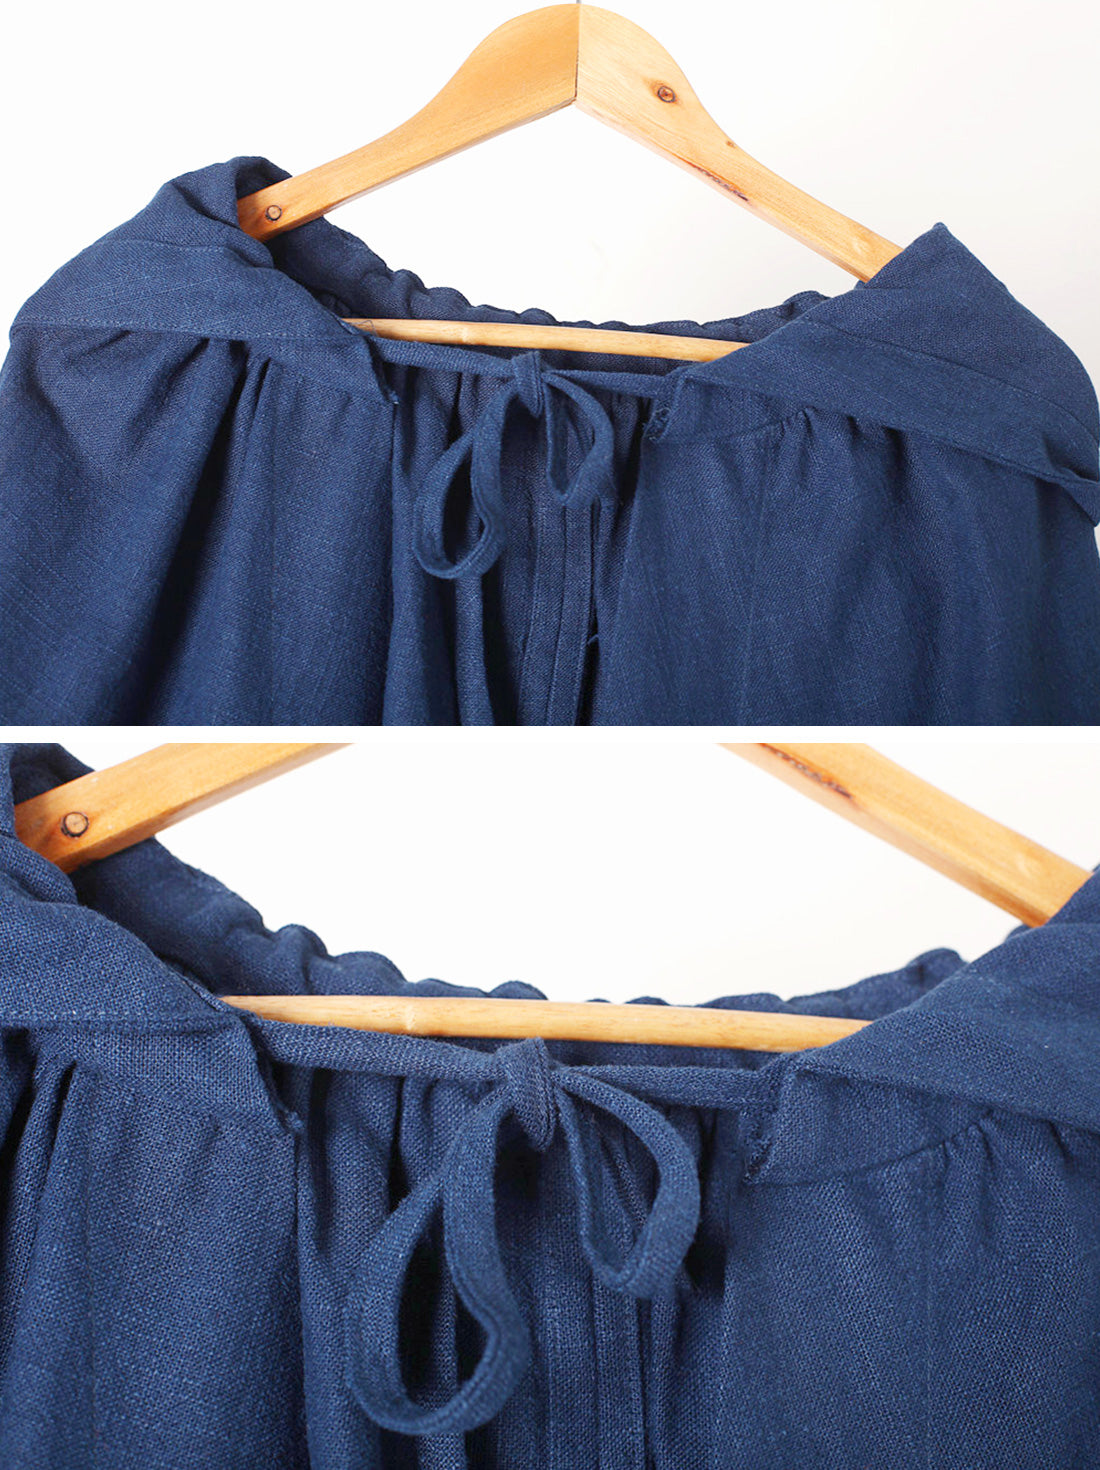 Solid Color Hooded Linen Cape Coat Details 1